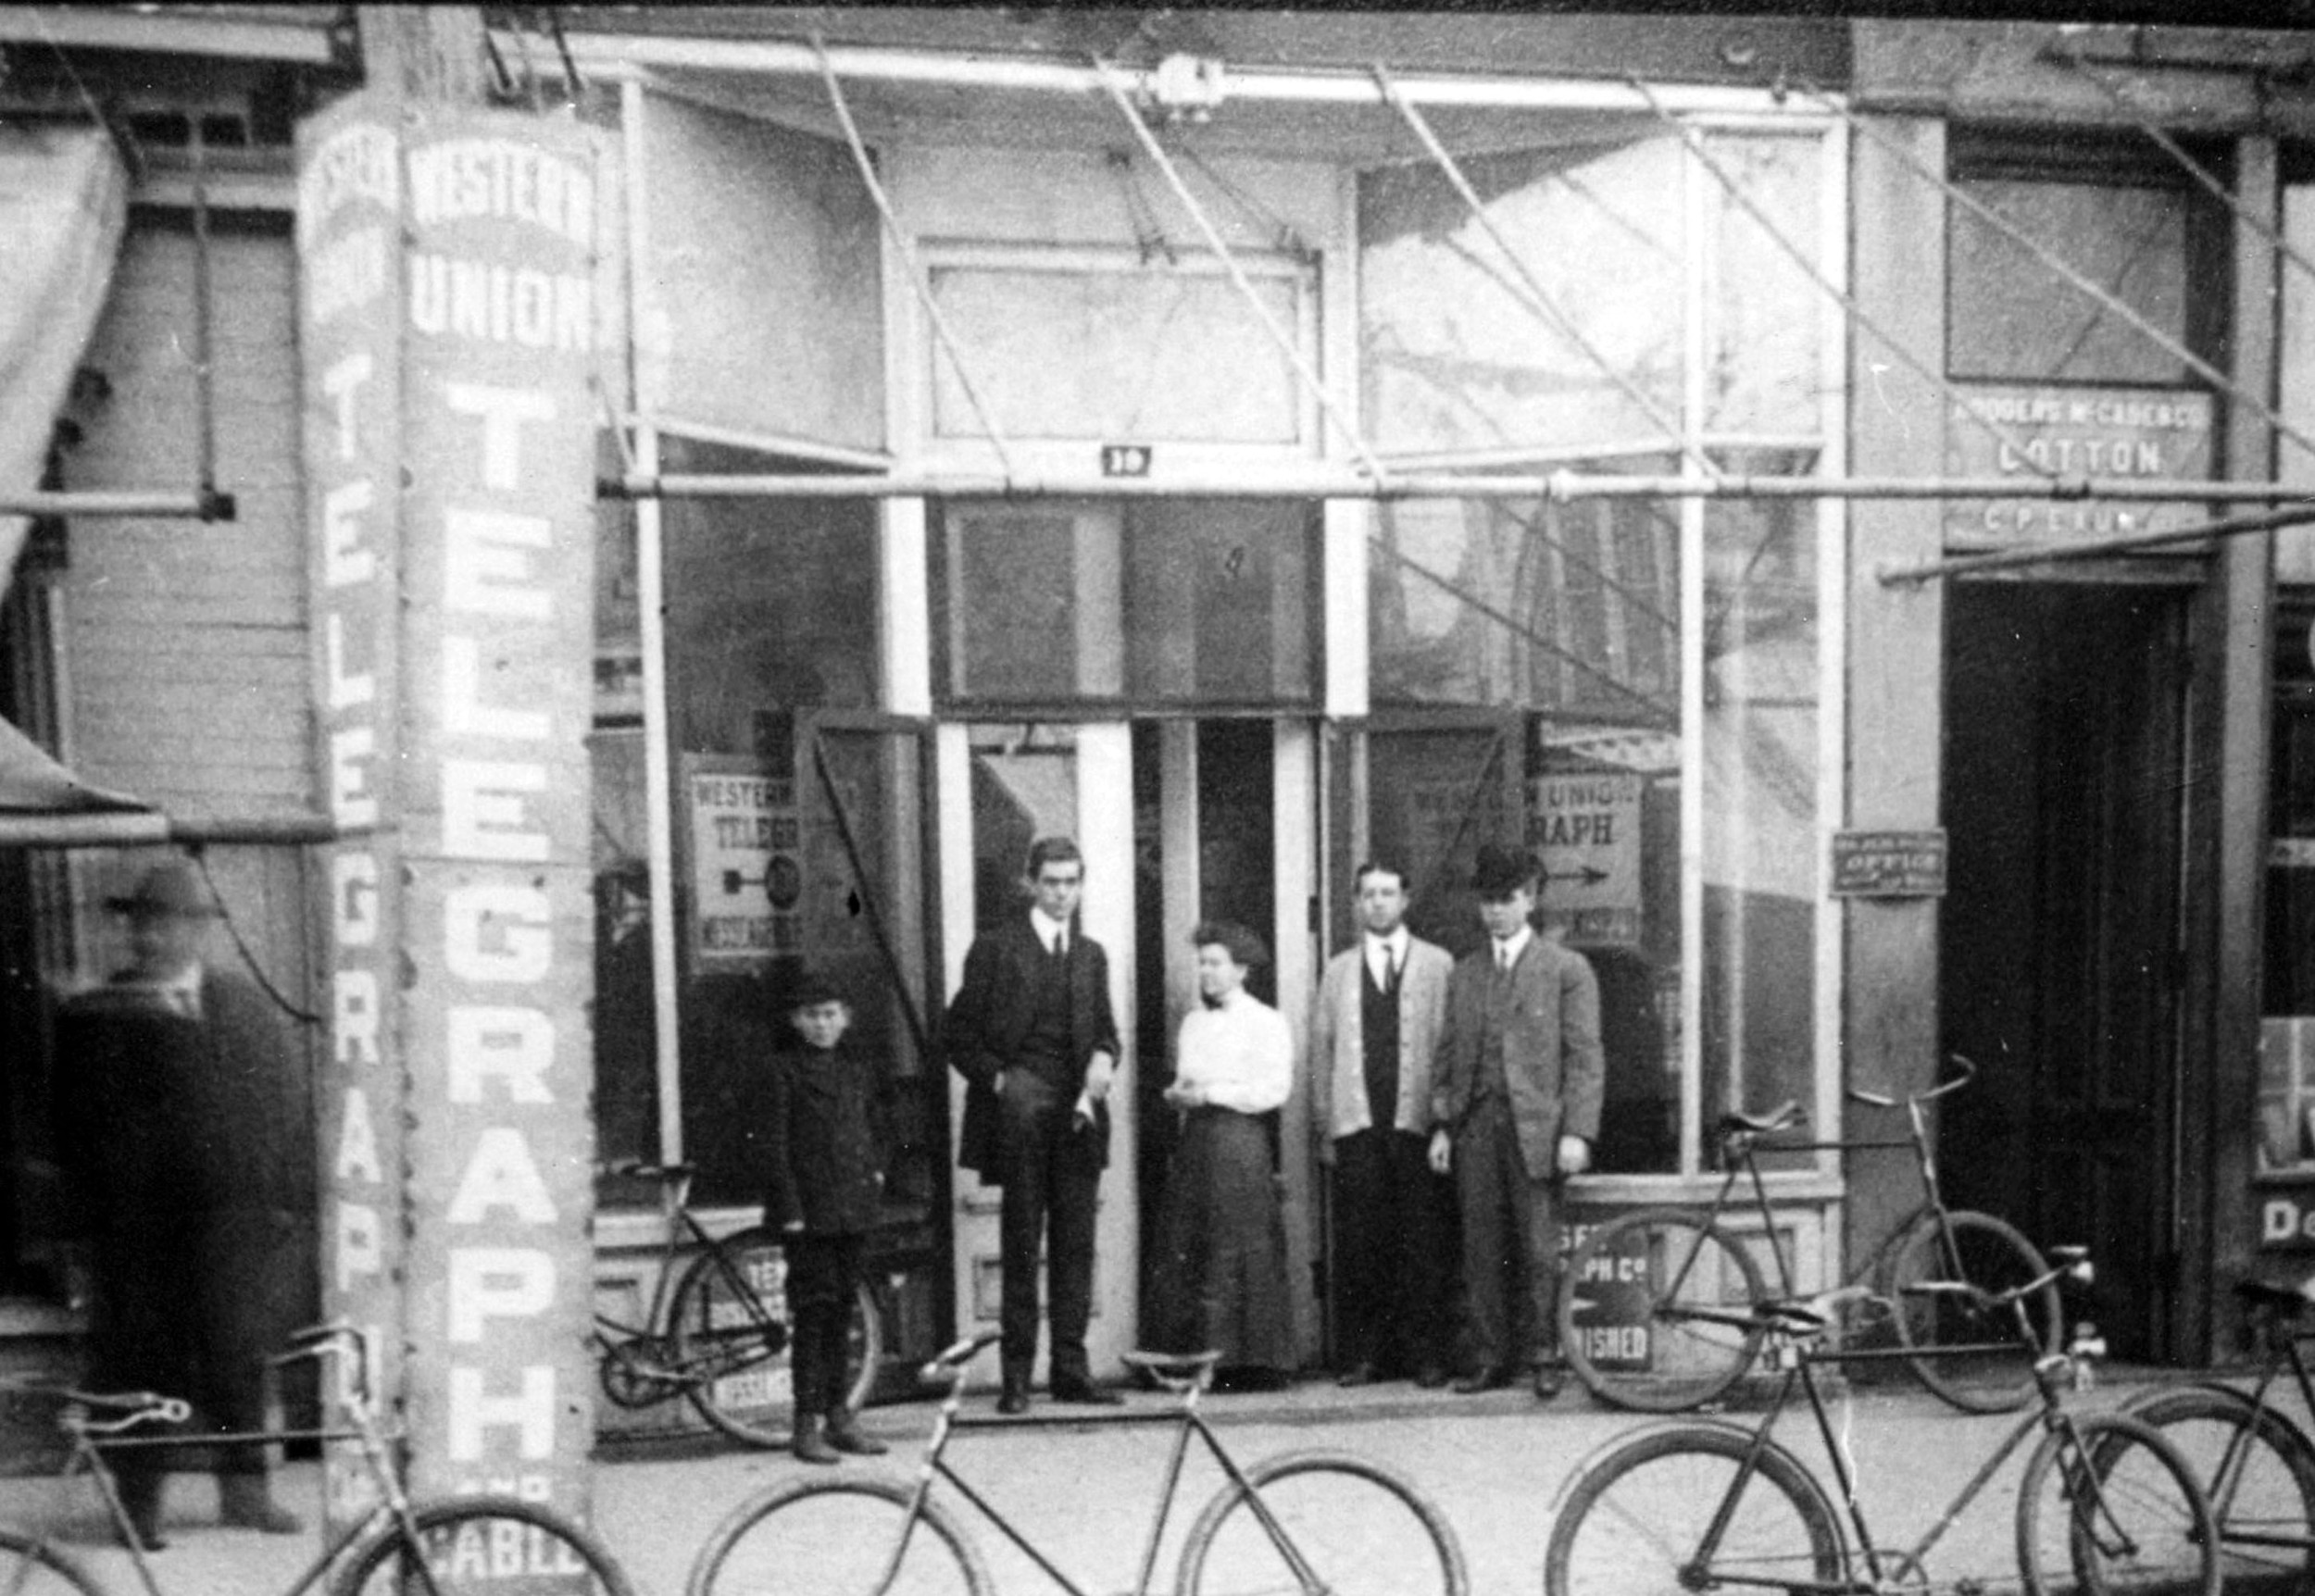 S.W. Rumph, Scott's father, stands in front  of the Western Union on Main Street in 1911. Rumph was the manager of the store.